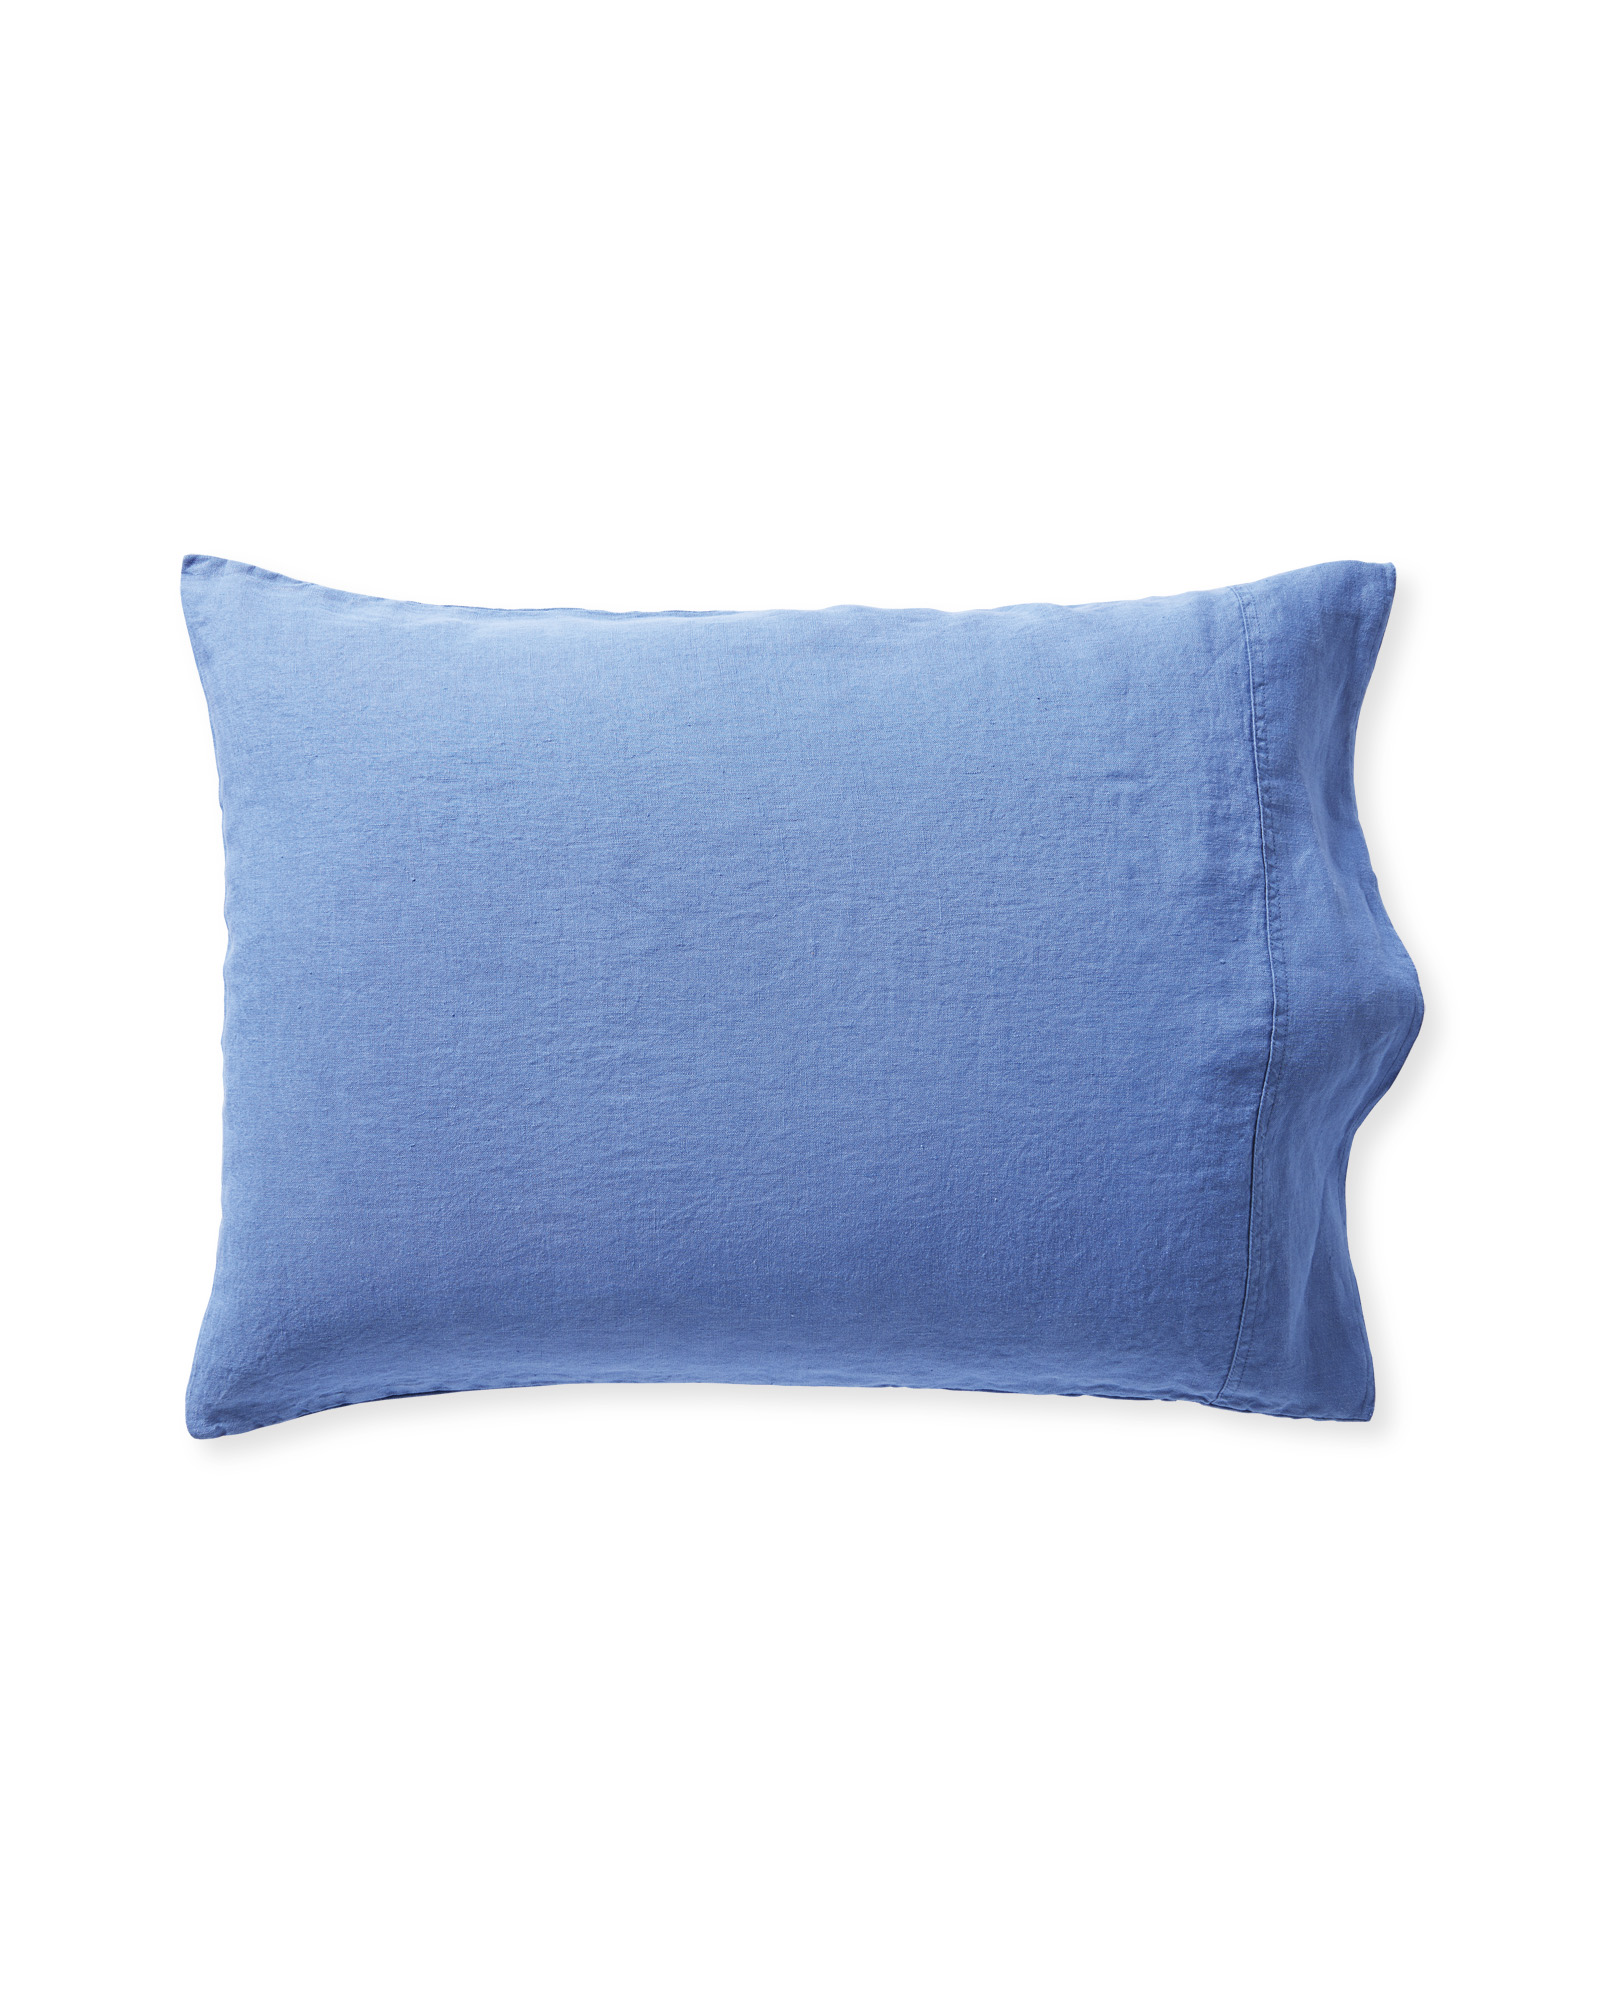 Positano Linen Pillowcases (Extra Set of 2), French Blue